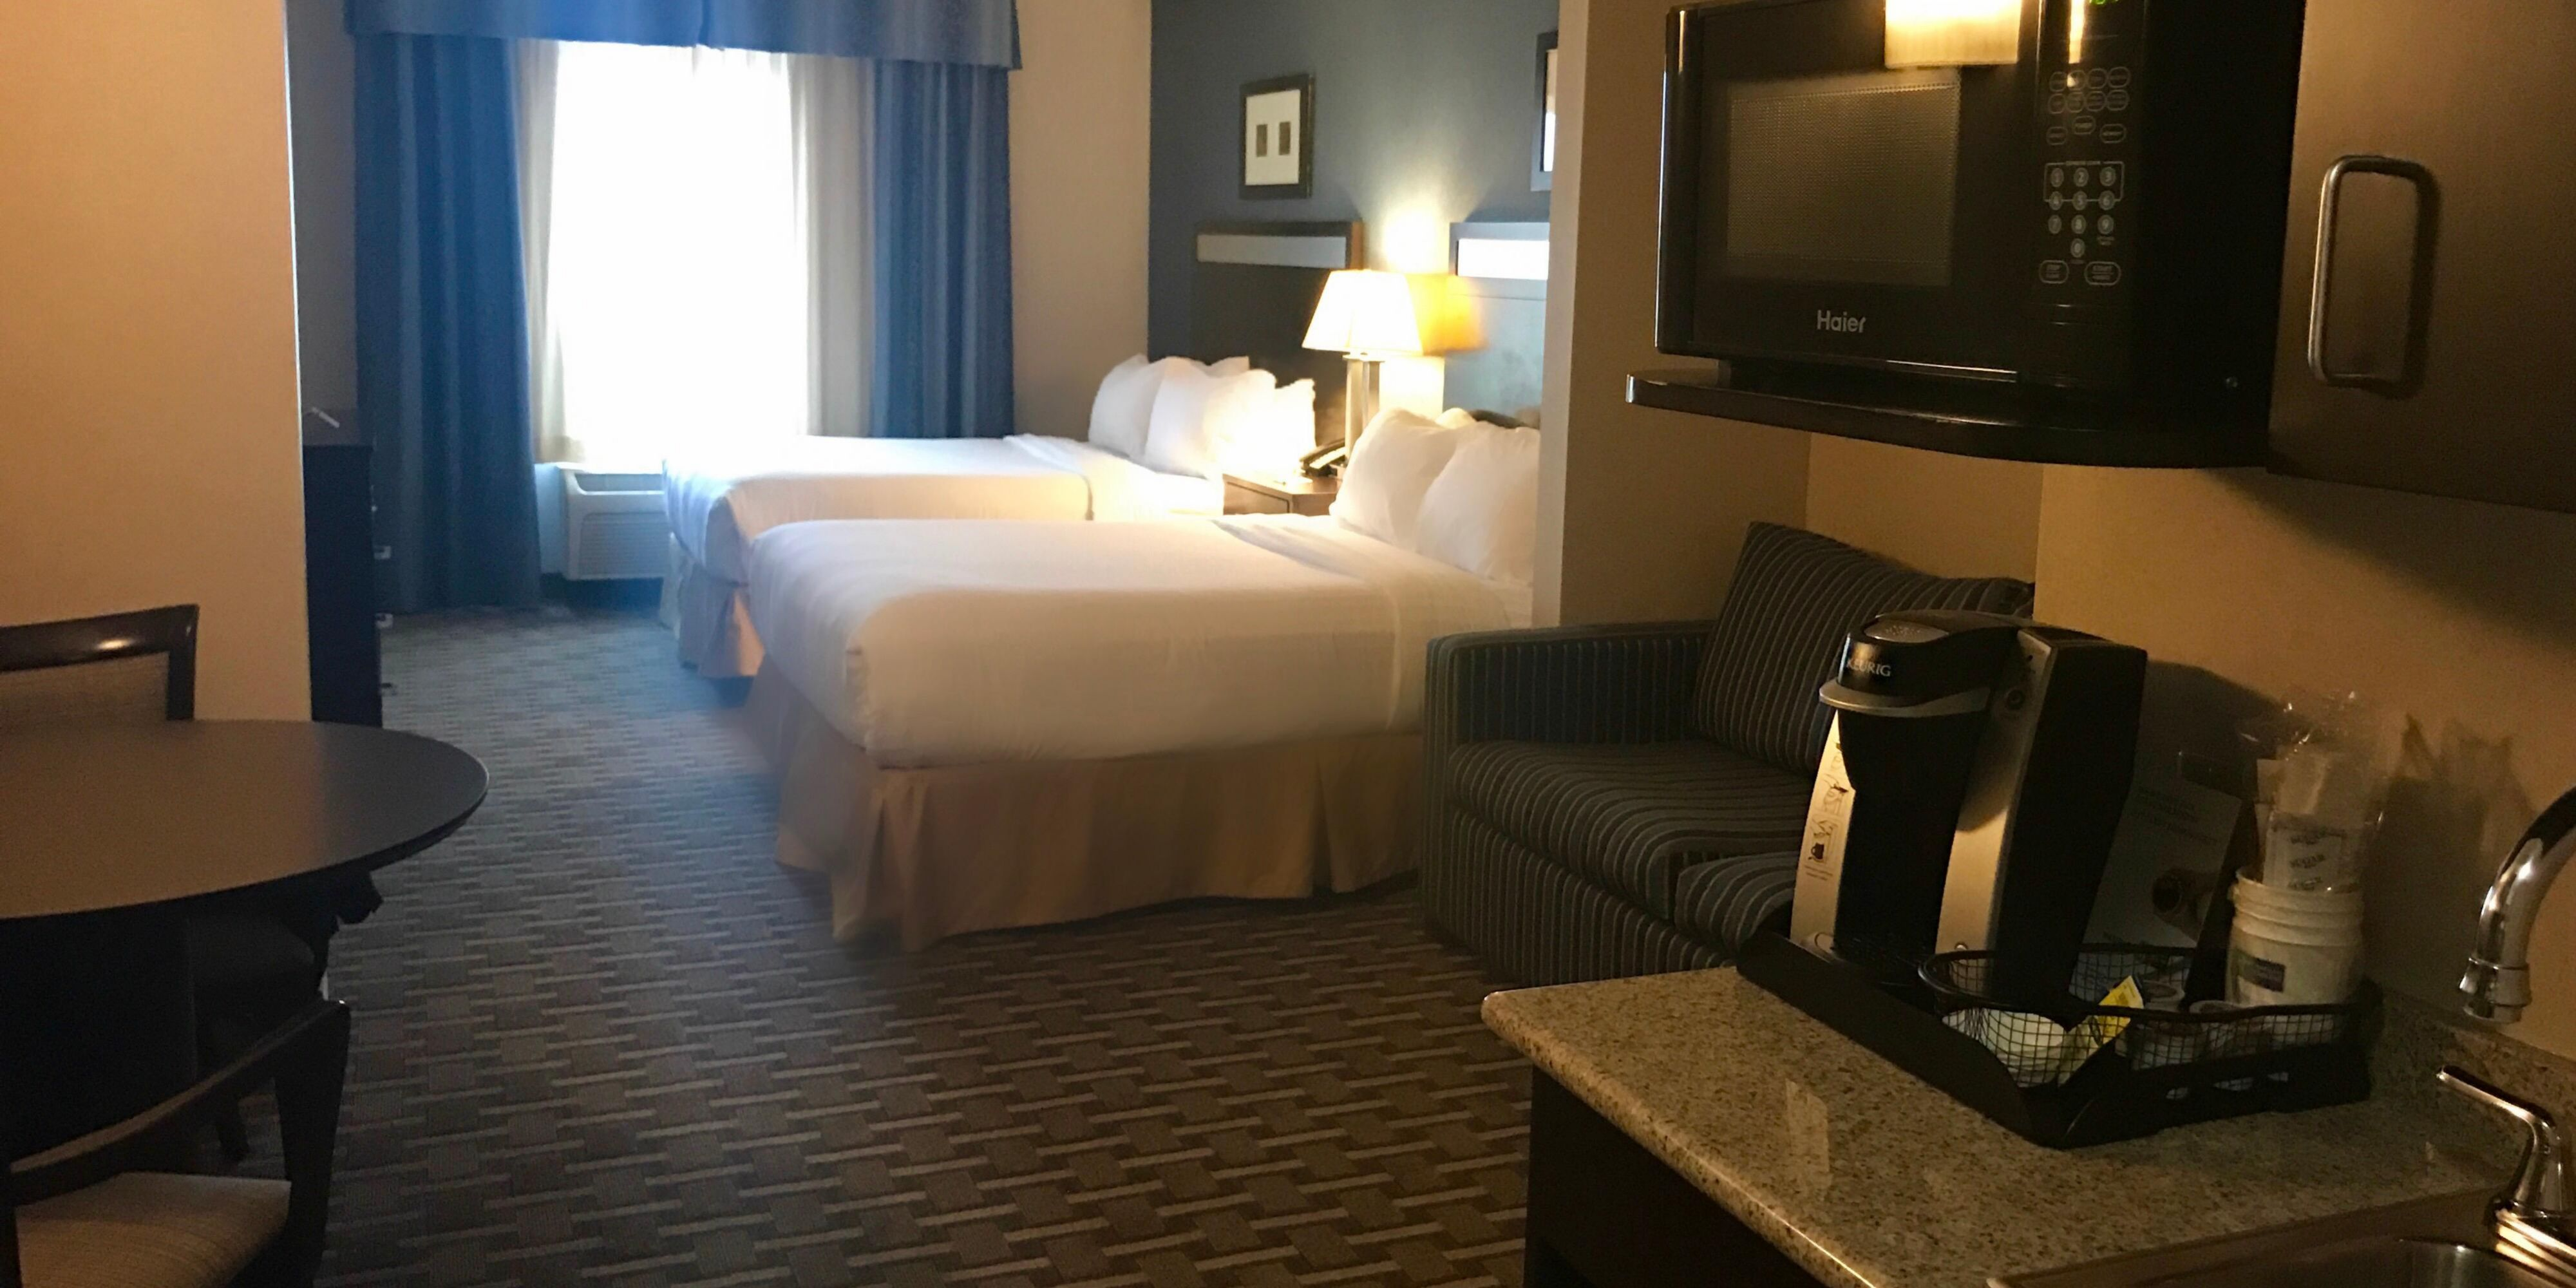 holiday inn express & suites morton peoria area hotelihg